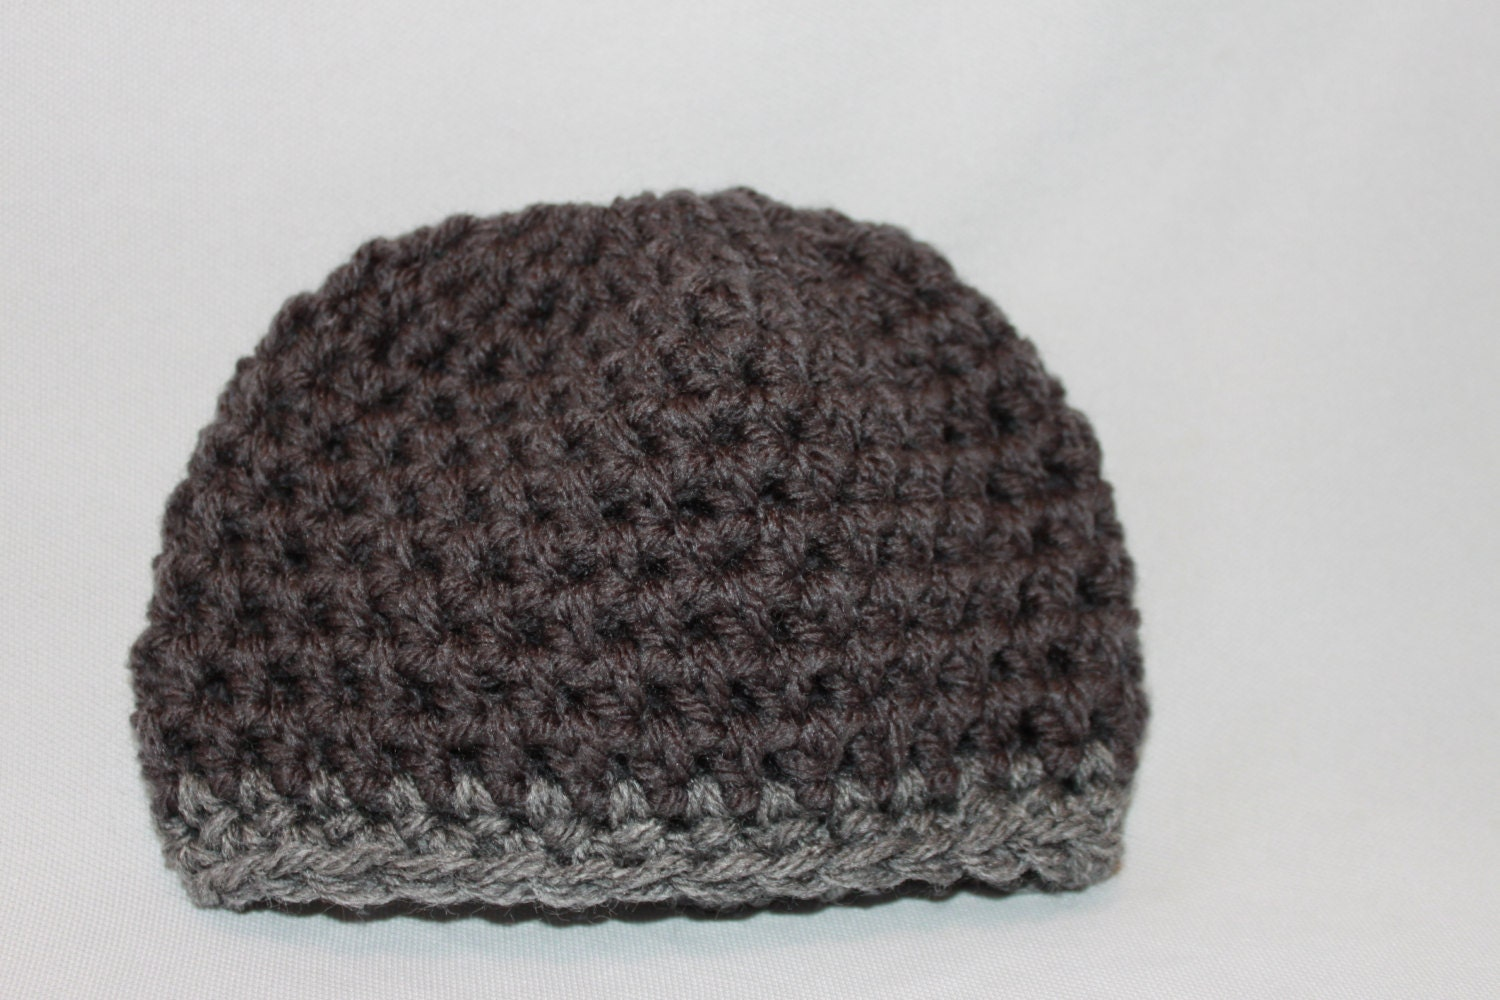 Newborn Hat - Baby Hat - Crochet Hat - Gray Baby Hat- Striped Gray Hat - Infant Hat - Crocheted Boys Hat - MyStitchInTime